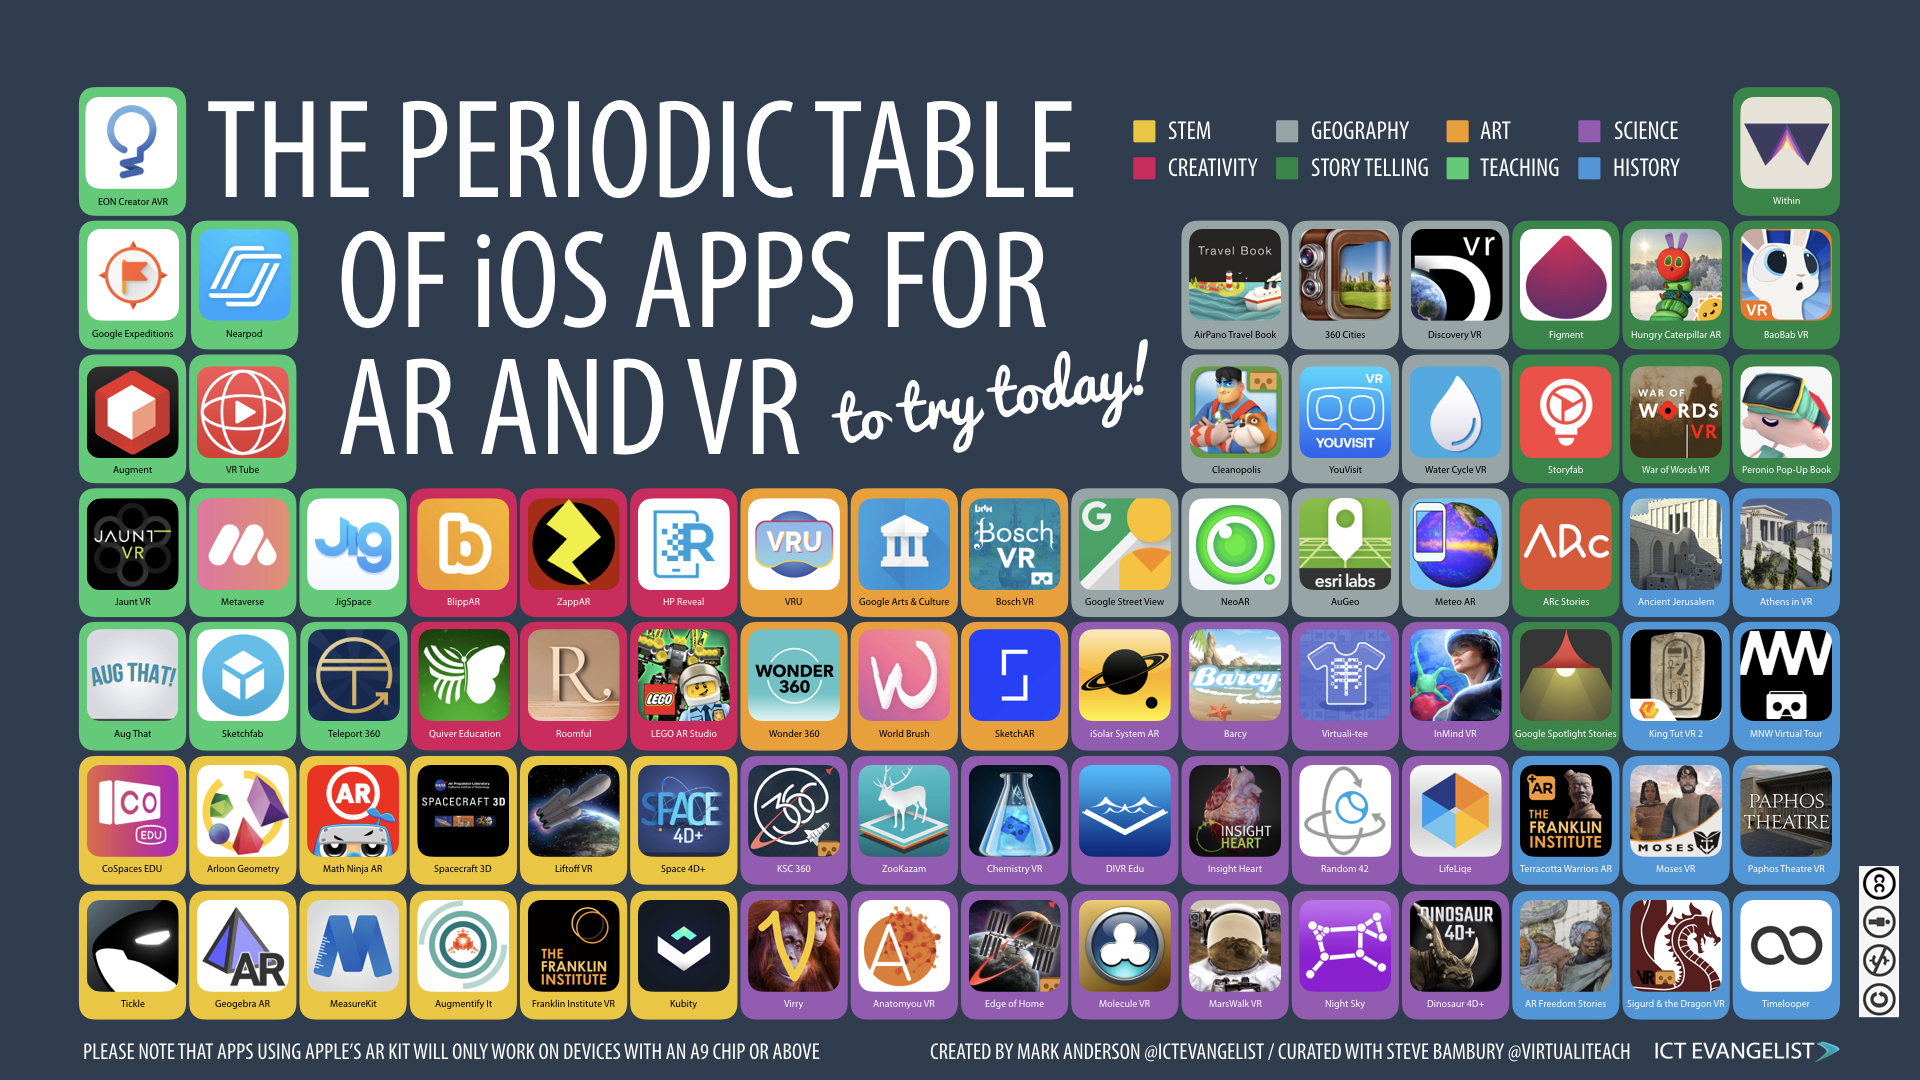 for innovation in education with technology is that of augmented reality and virtual reality ive been a fan of exploring how these types of apps can - Best Periodic Table App For Iphone